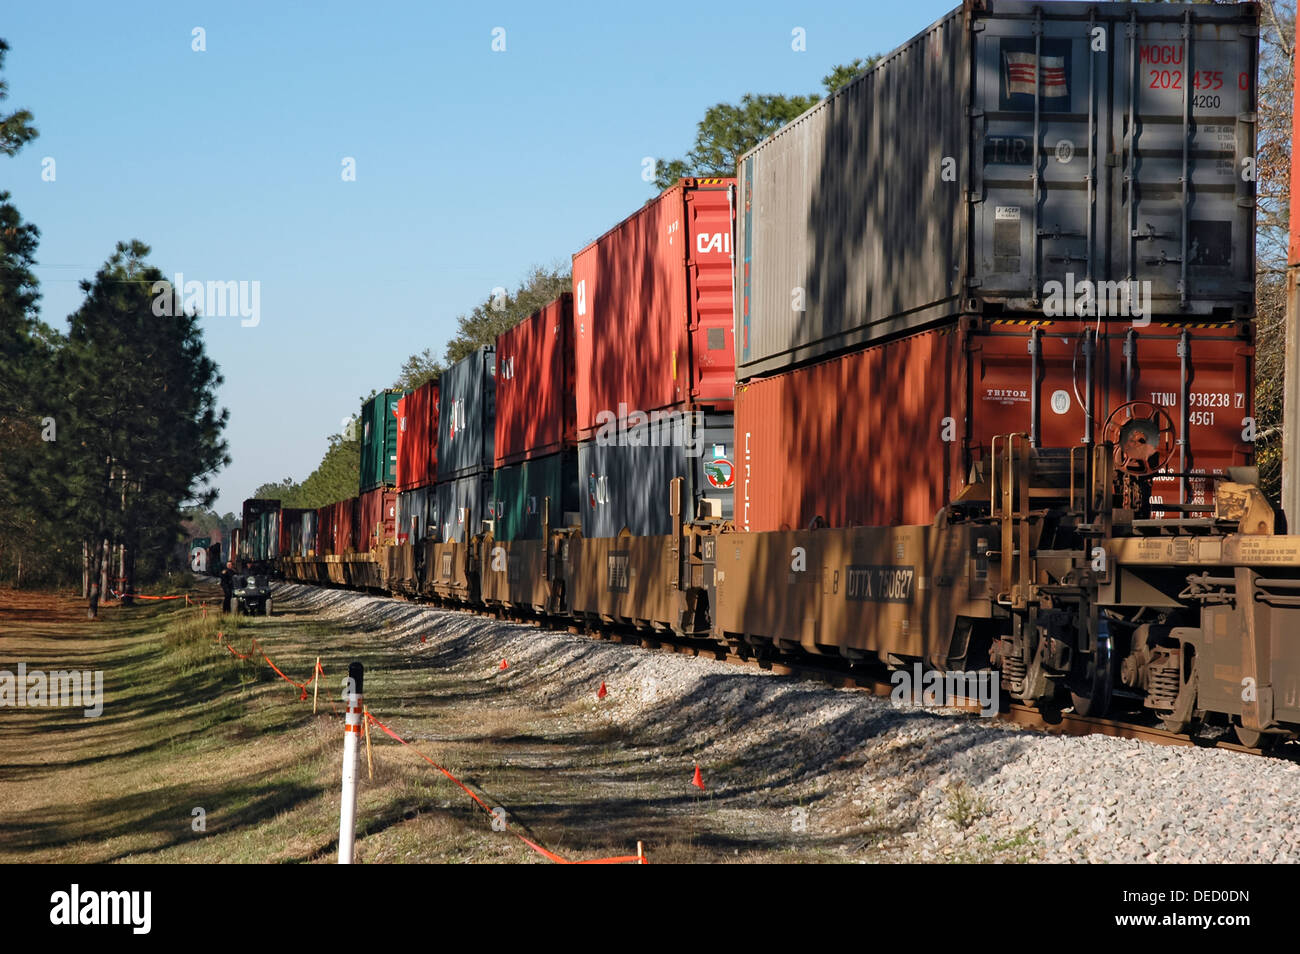 Train carrying freight containers chugs through a rural area of North Florida. - Stock Image